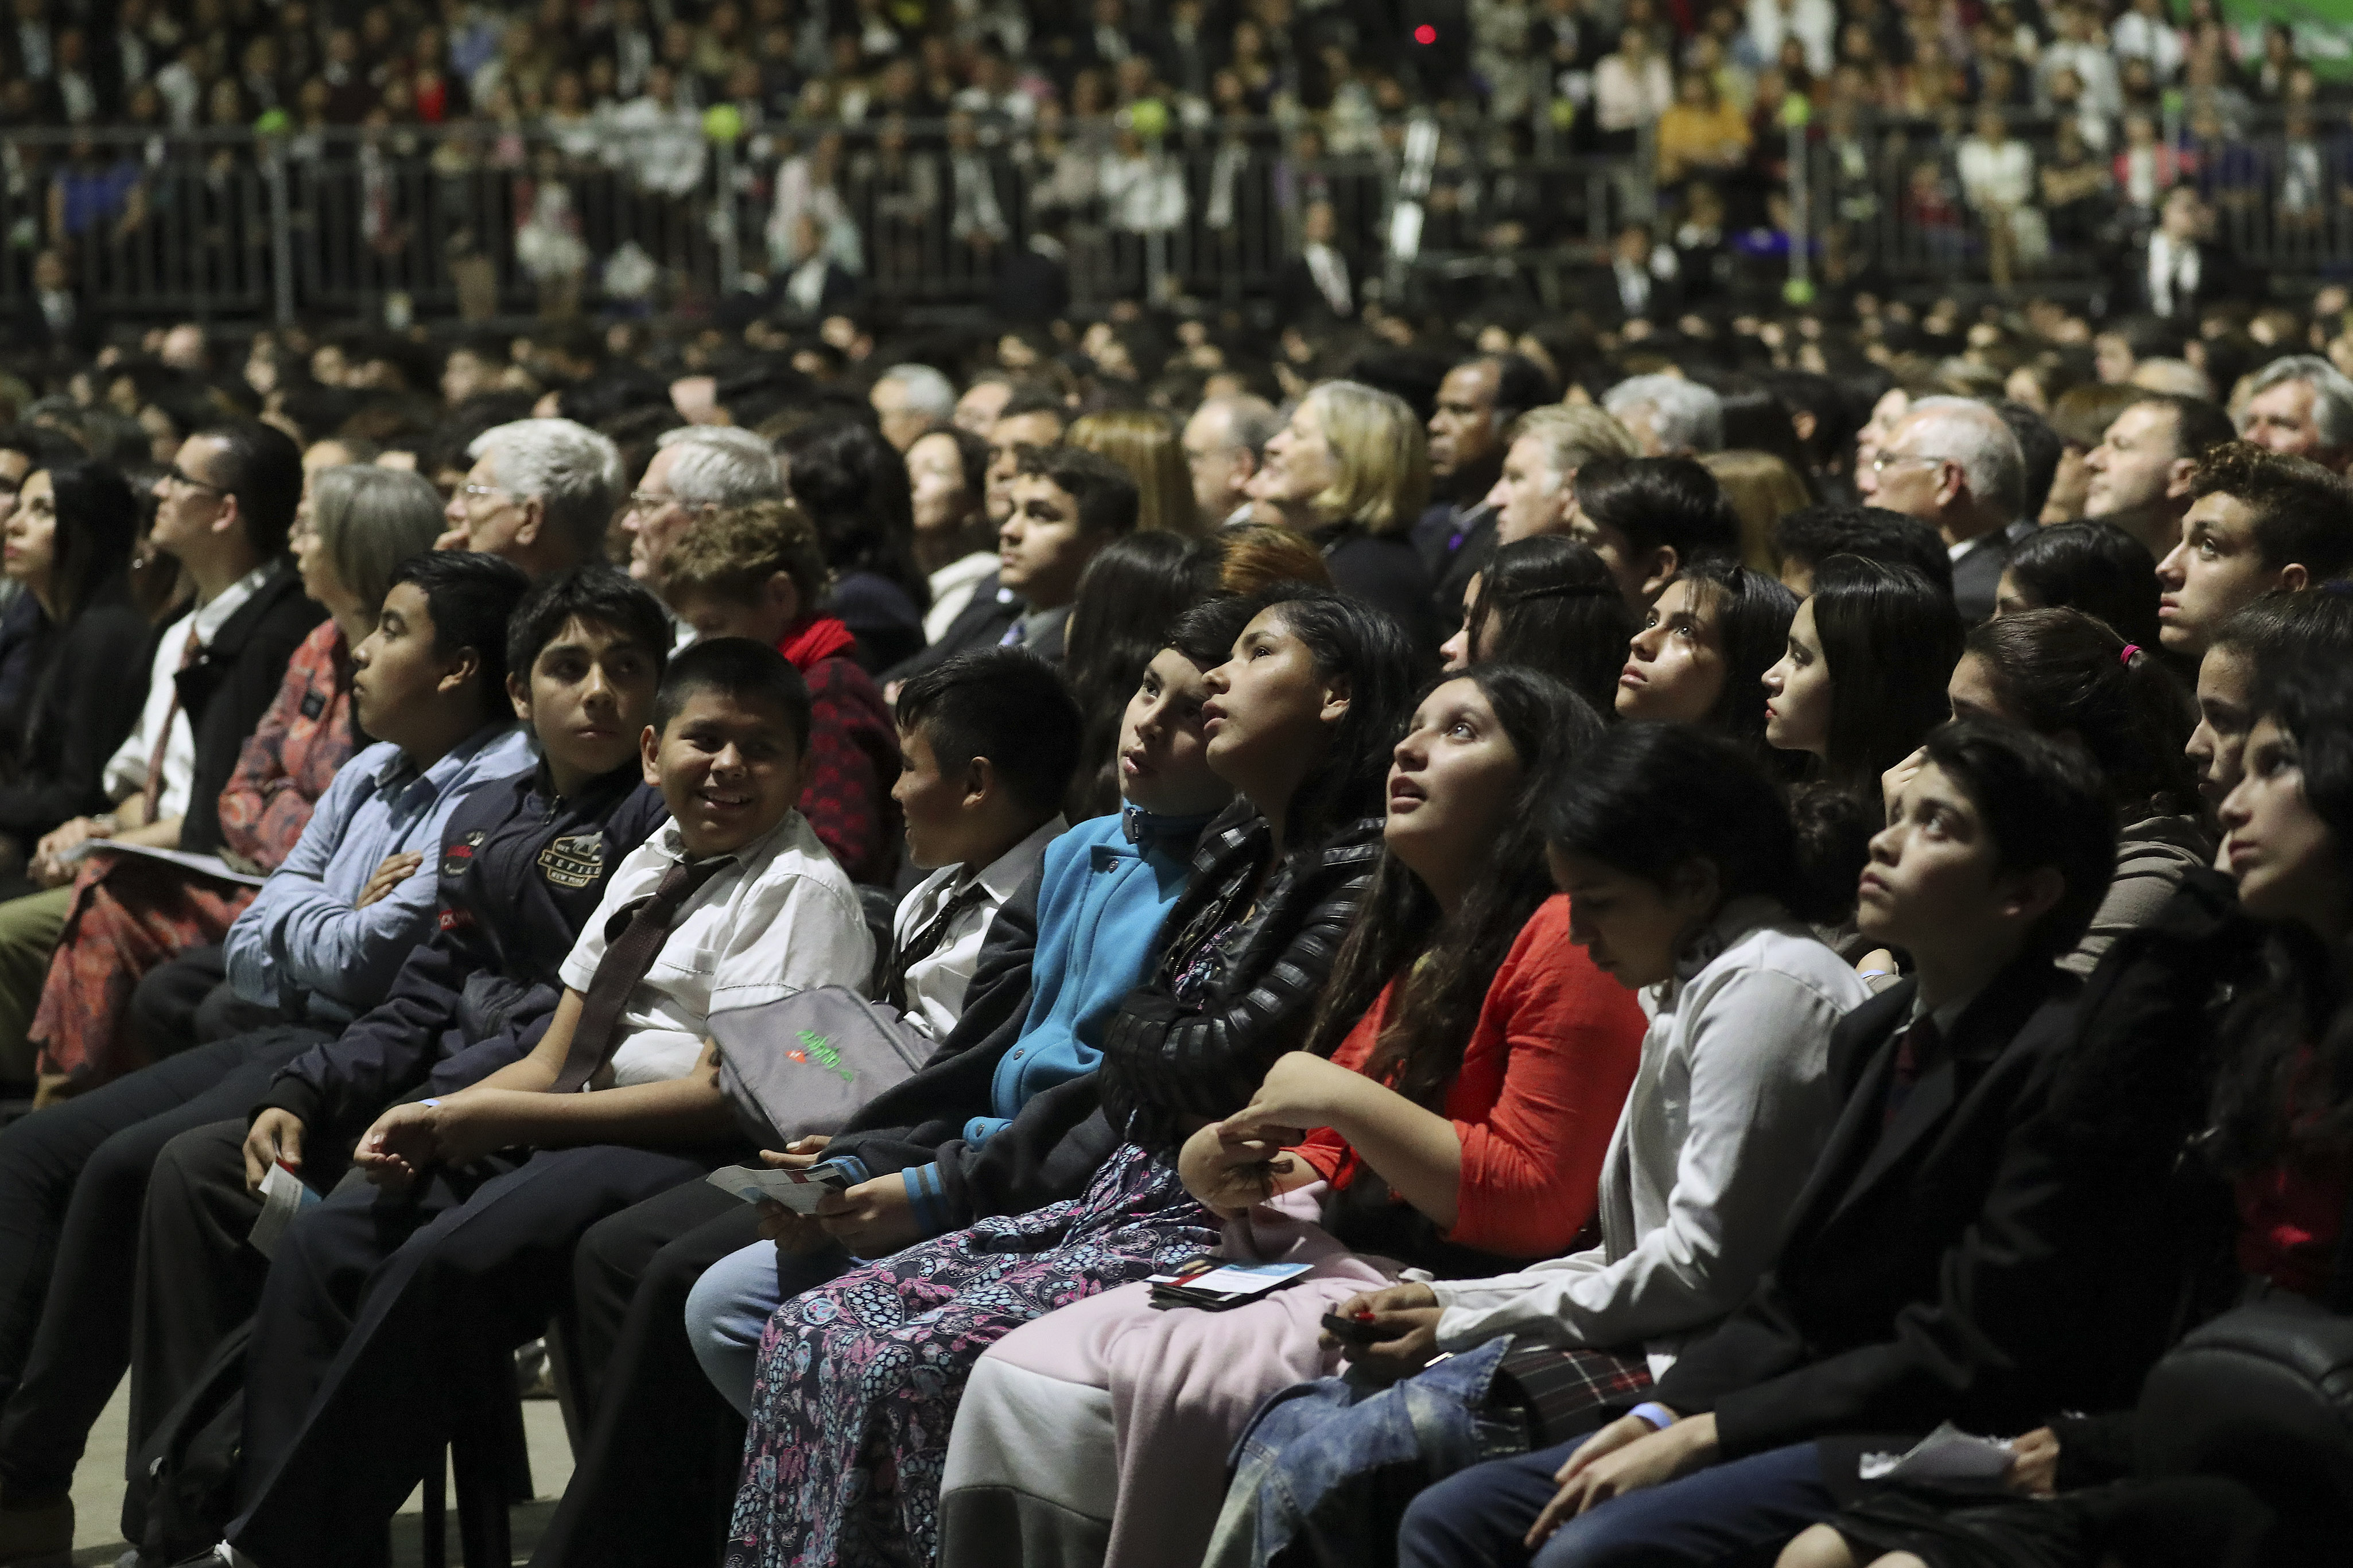 Attendees listen during a devotional in Buenos Aires, Argentina, on Wednesday, Aug. 28, 2019.